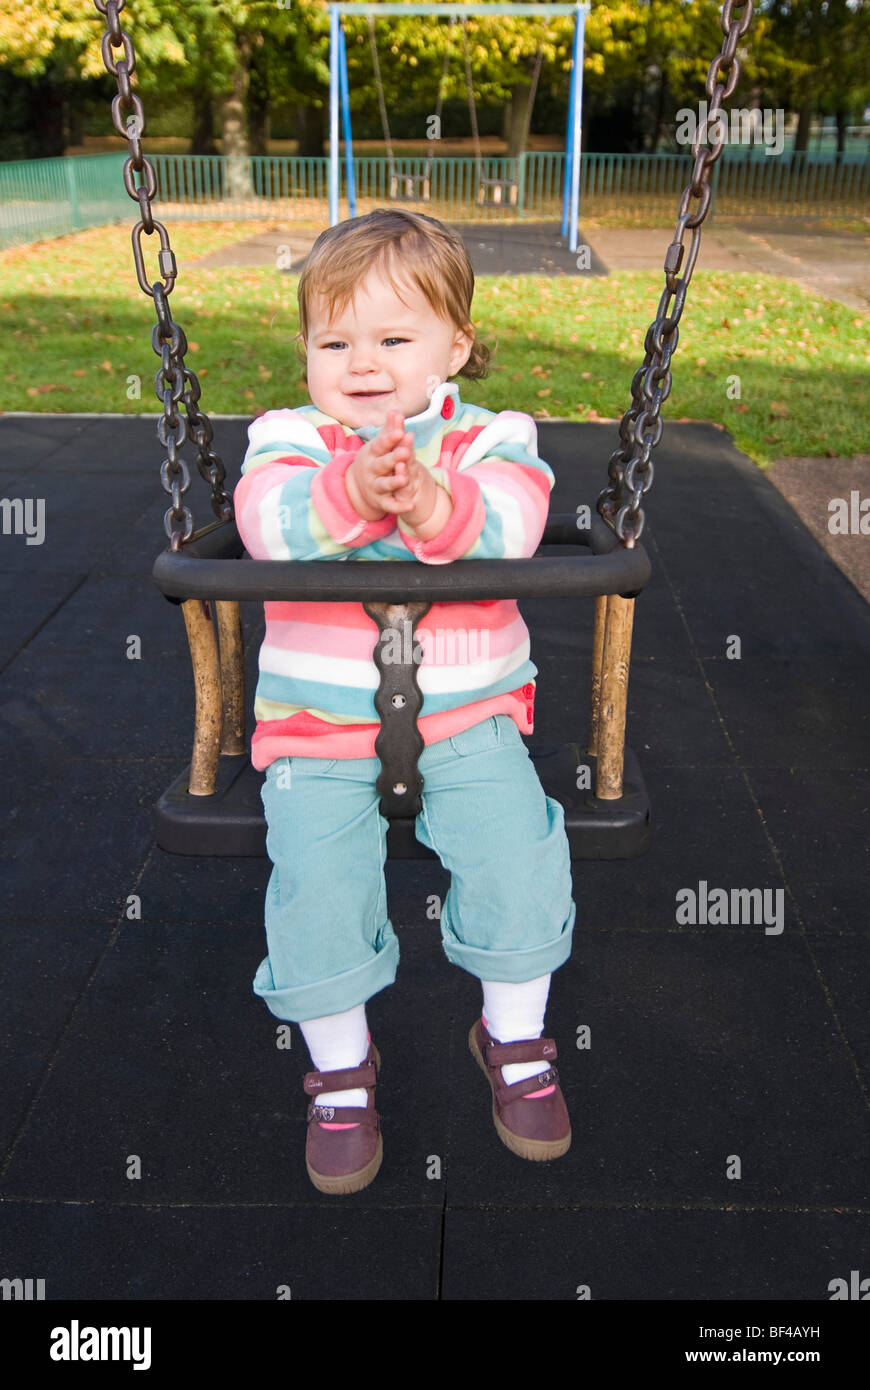 Vertical close up portrait of a little girl smiling and clapping whilst sitting on a swing at the park in the sunshine. Stock Photo